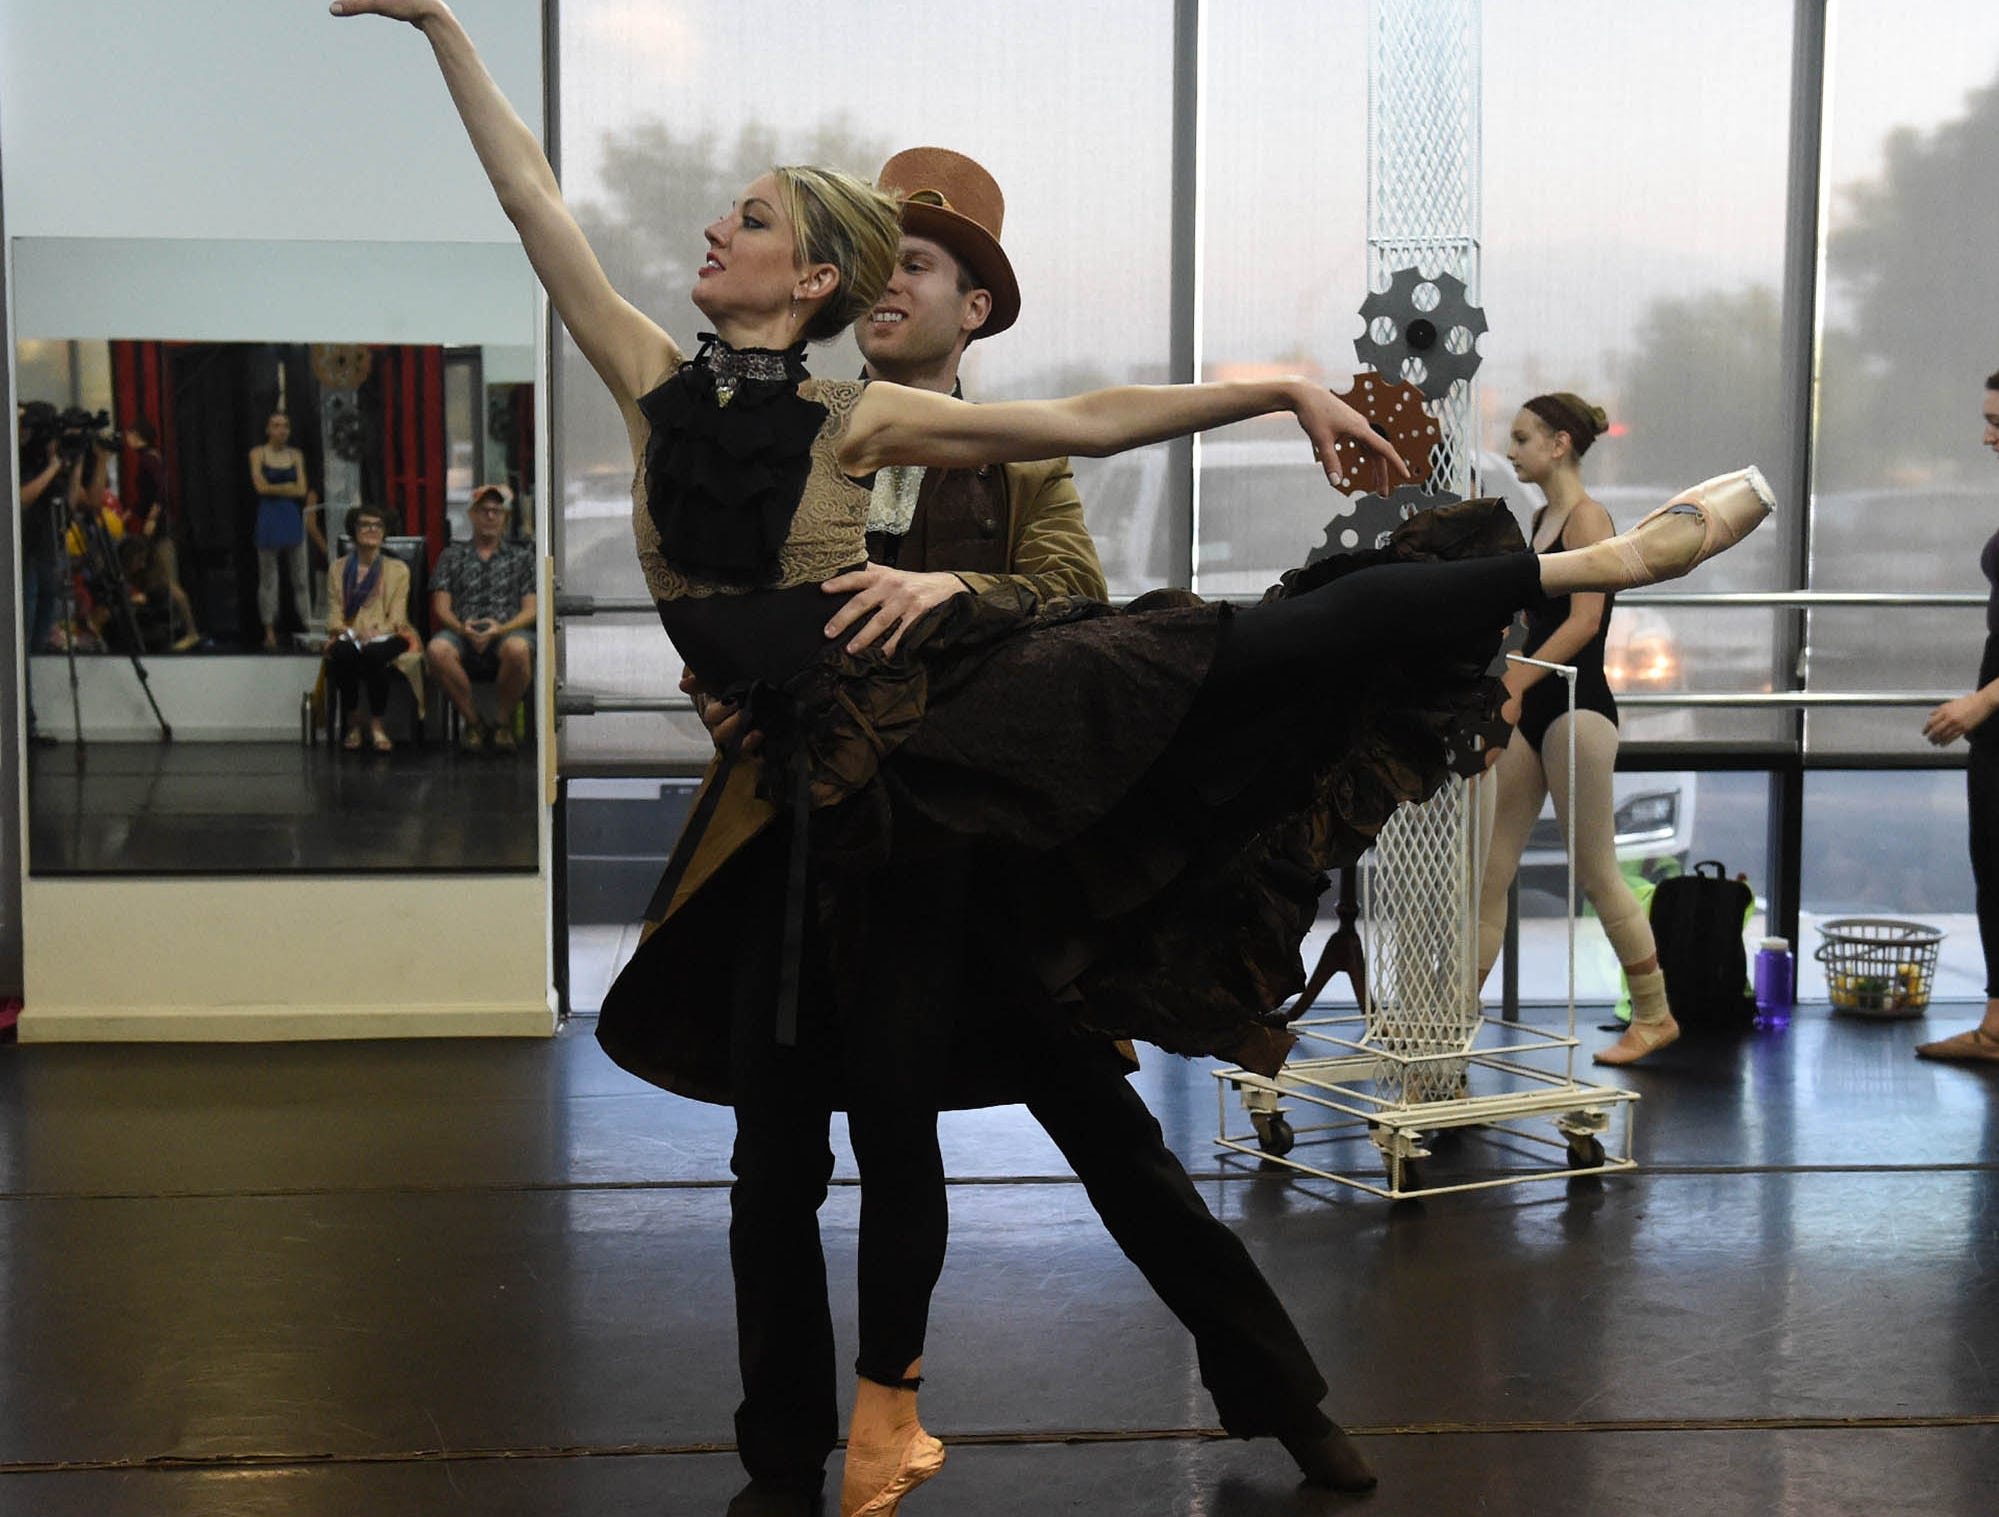 Dancers rehearse for the Sierra Nevada Nevada Ballet's steampunk version of A Midsummer Night's Dream - The Ballet at the Sierra Nevada Ballet dance studio in Reno. Show time is August 11th at the Carson City Community Center.